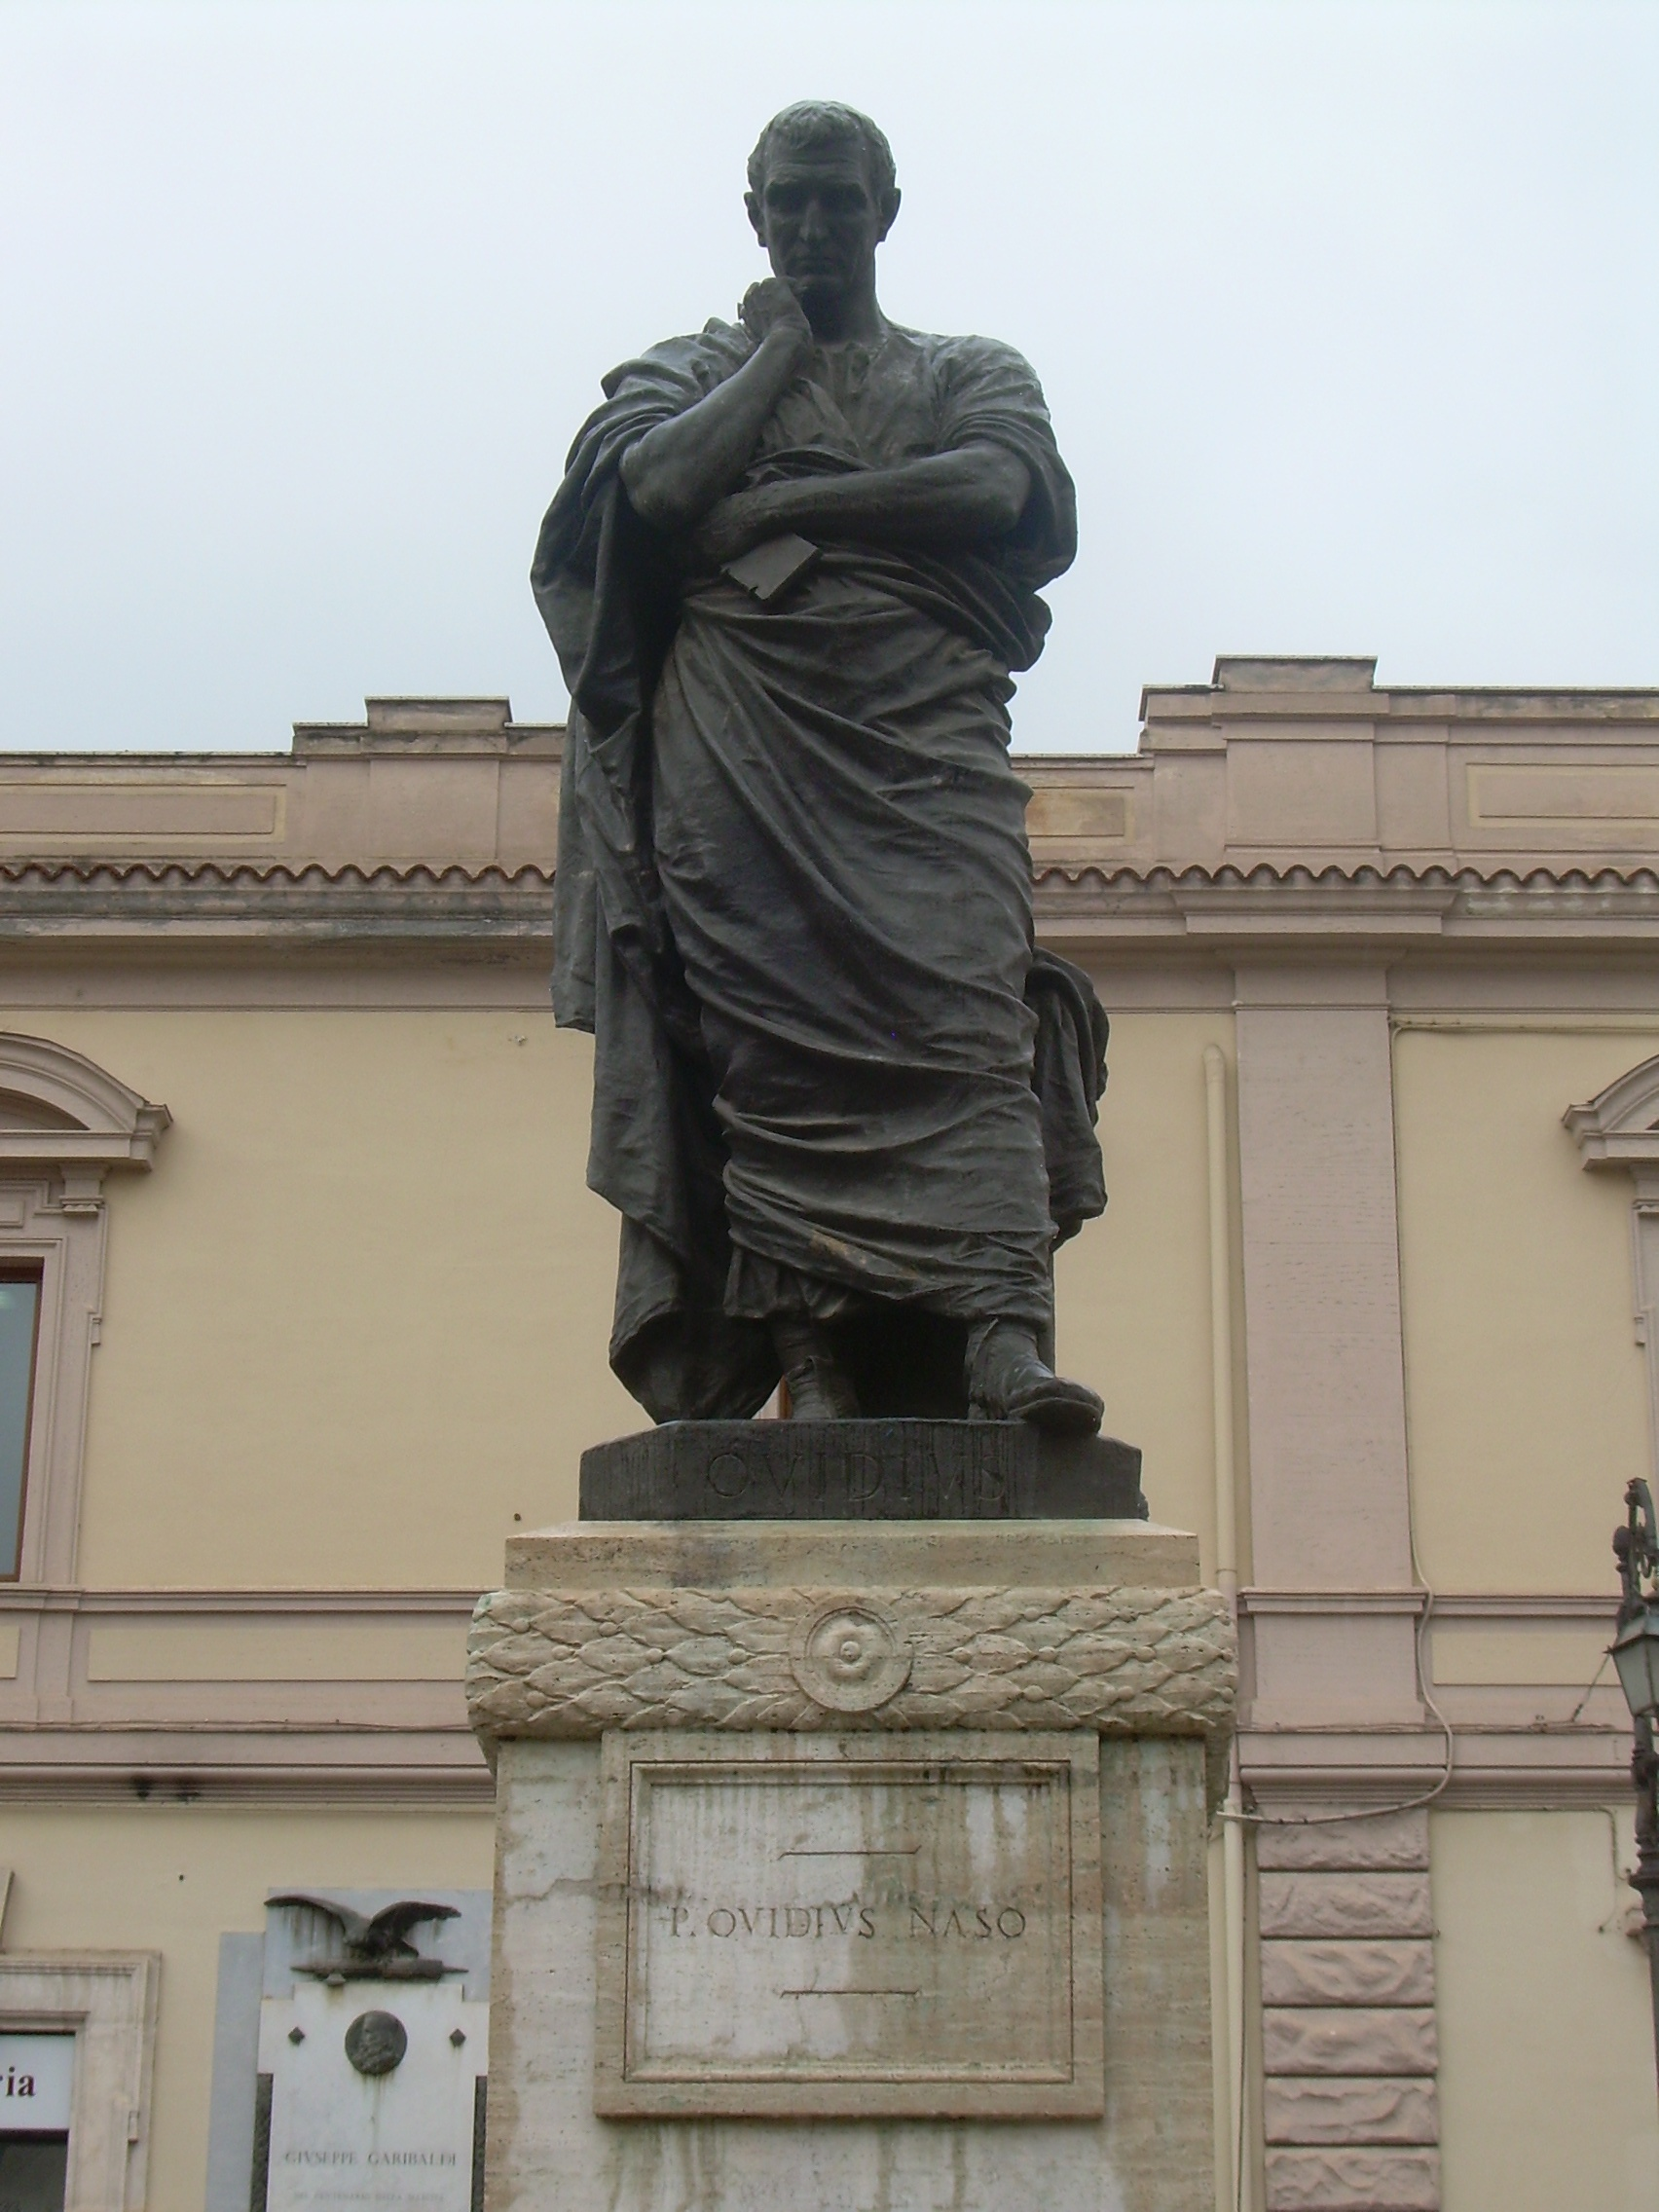 Image of statue in Rome